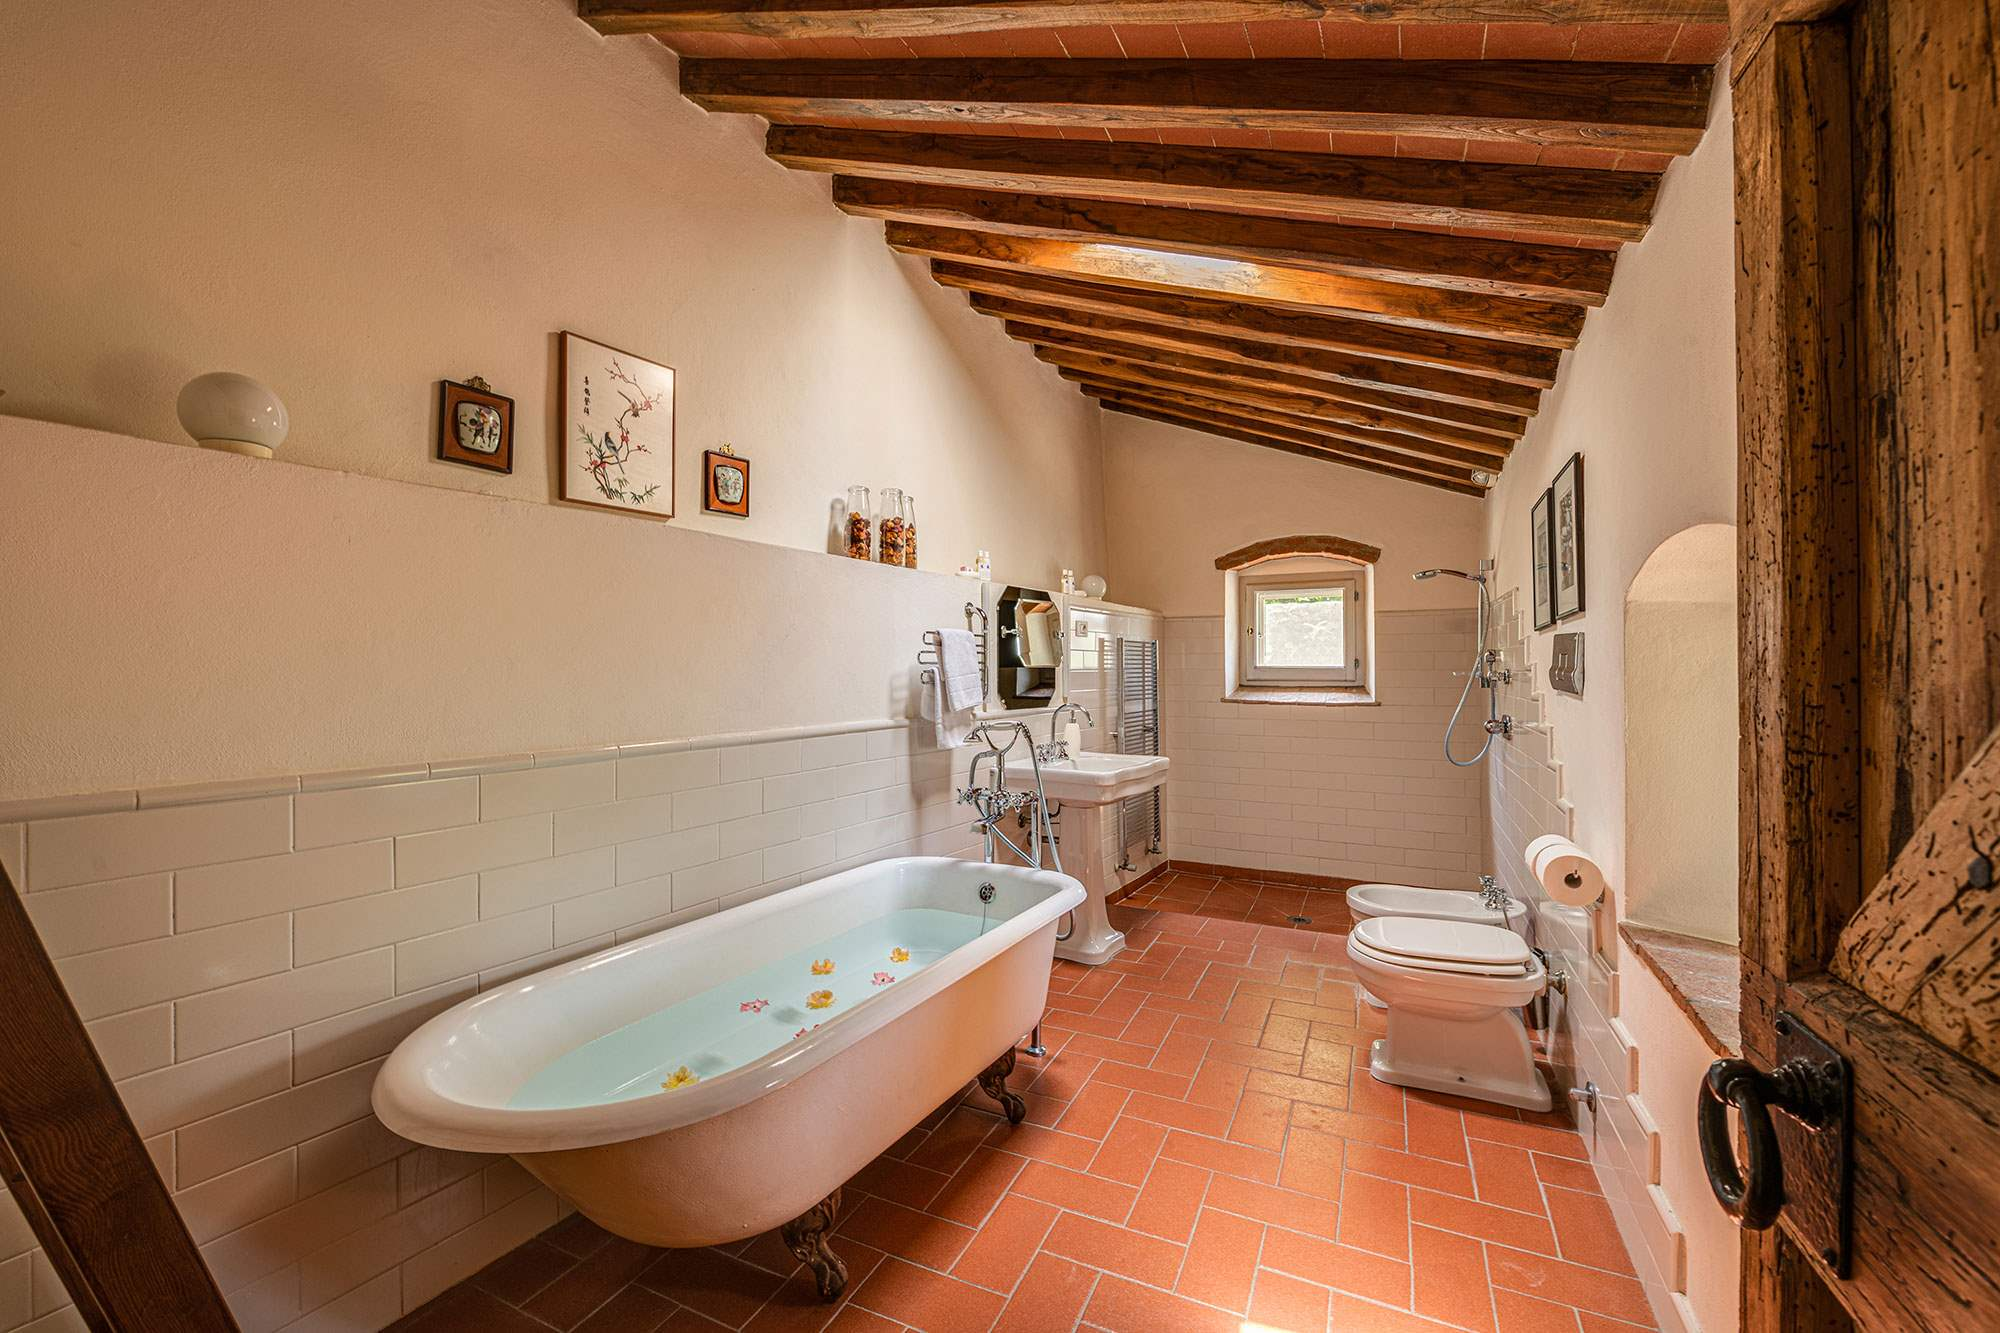 Villa Claudia, 5 Bedroom rate, 5 bedroom villa in Chianti & Countryside, Tuscany Photo #18